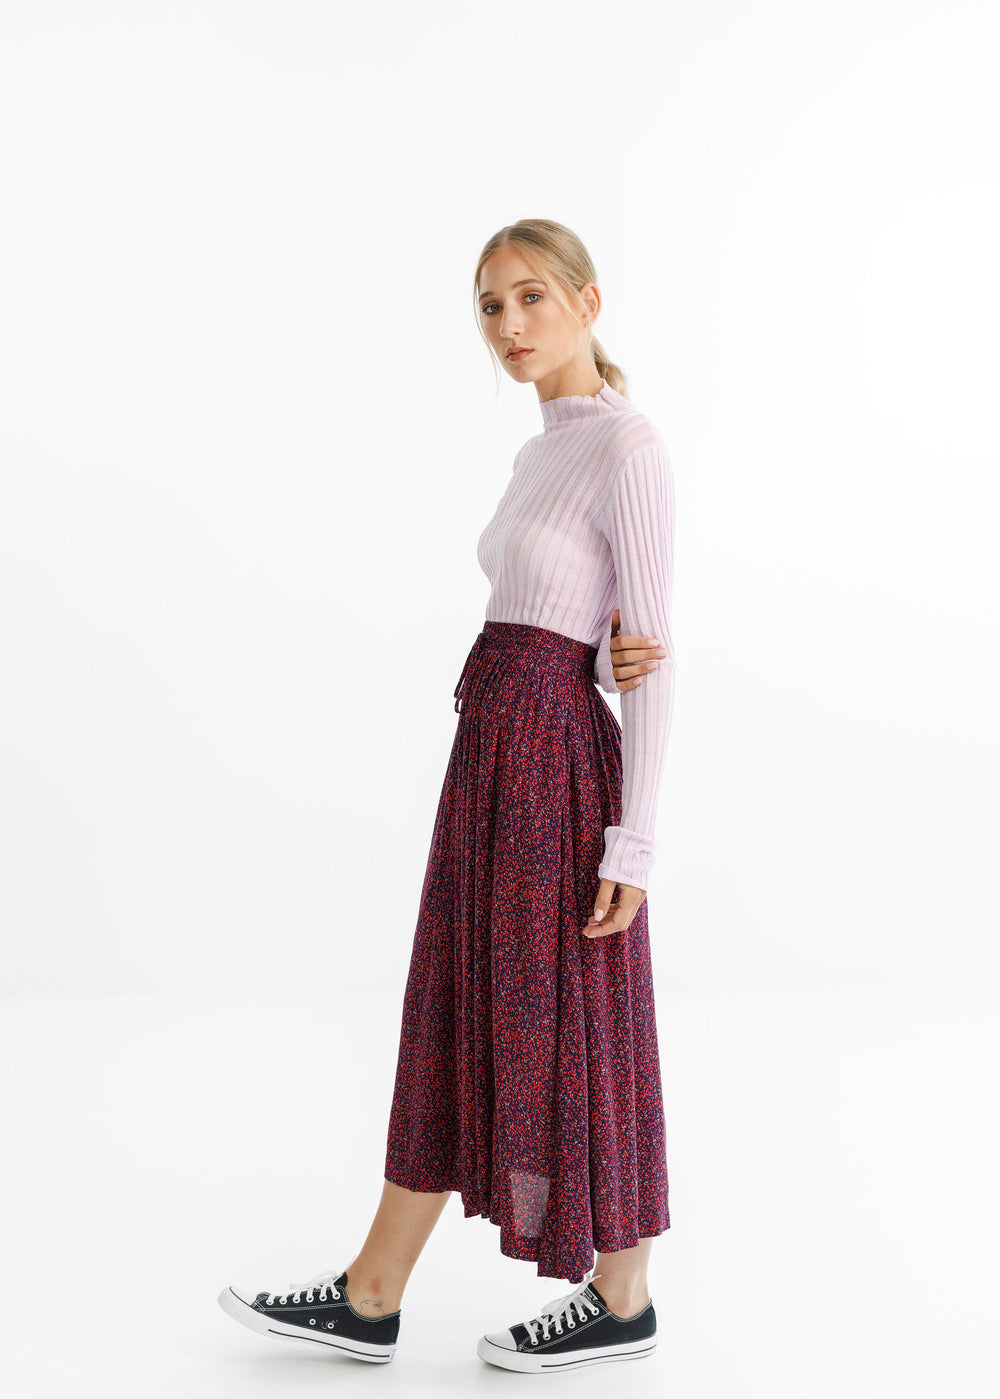 MYSTIC SKIRT - Ditsy Red